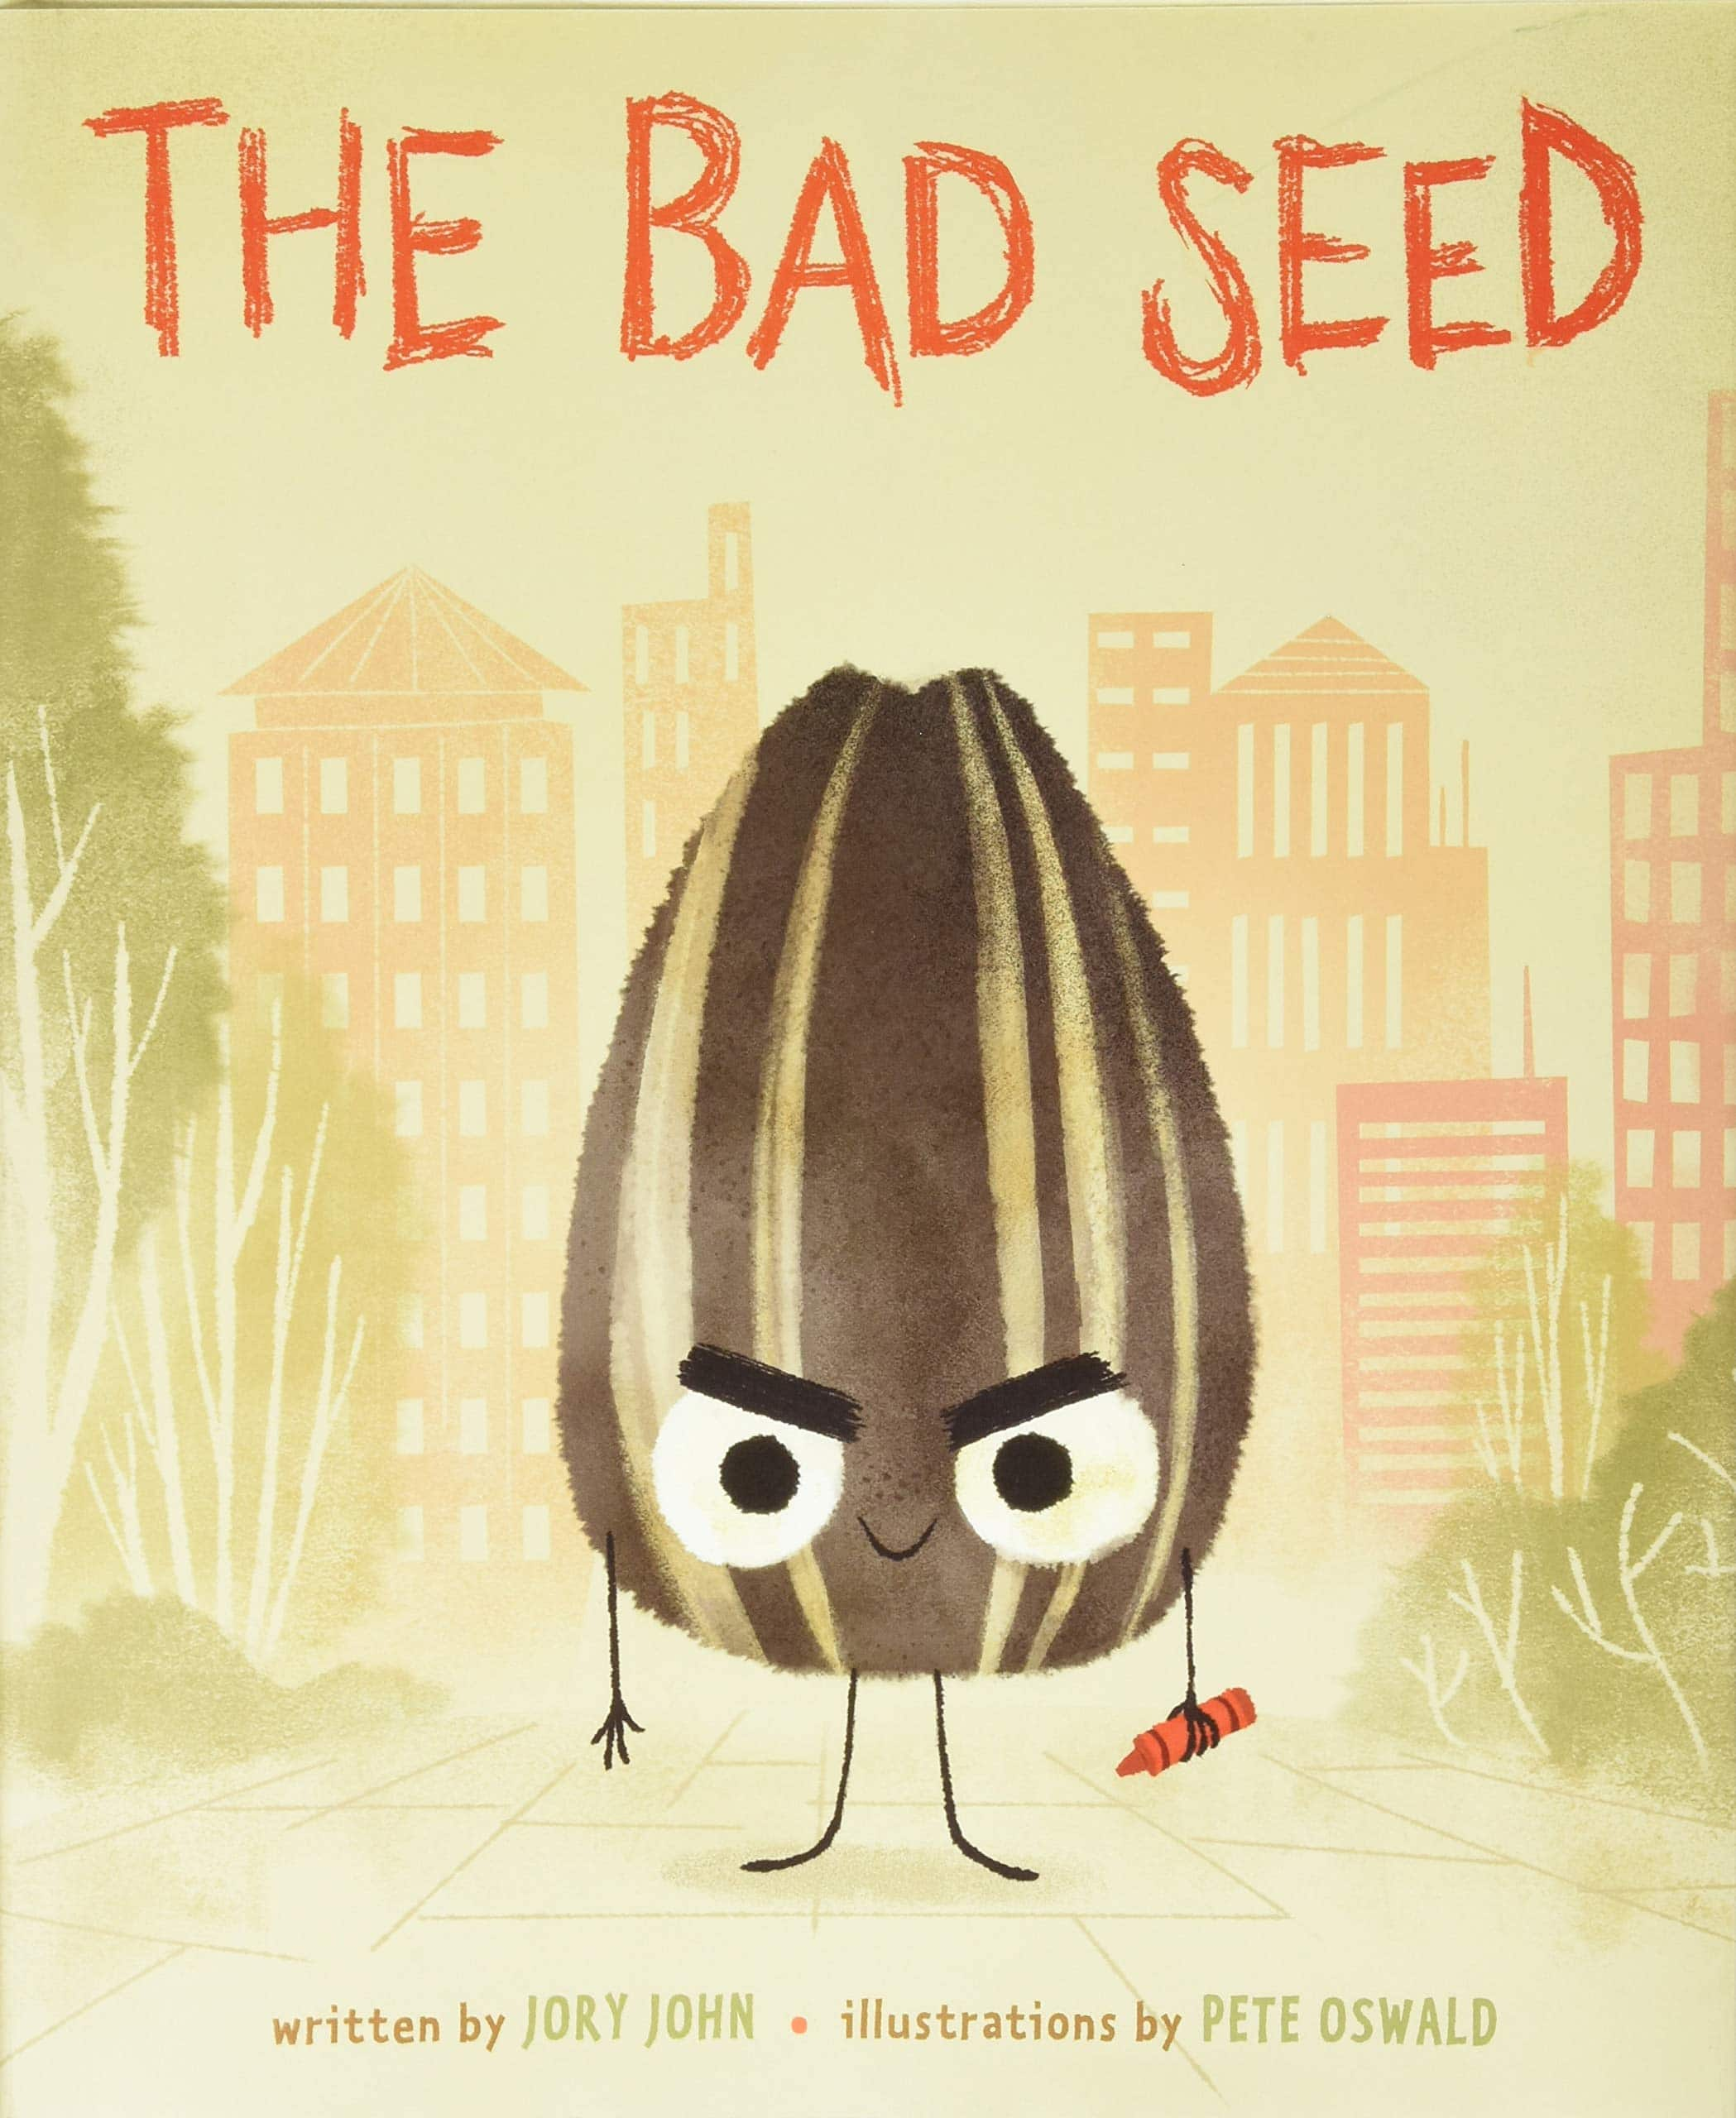 The Bad Seed Hardcover Childrens Book - Free Shipping w/ Prime $6.81